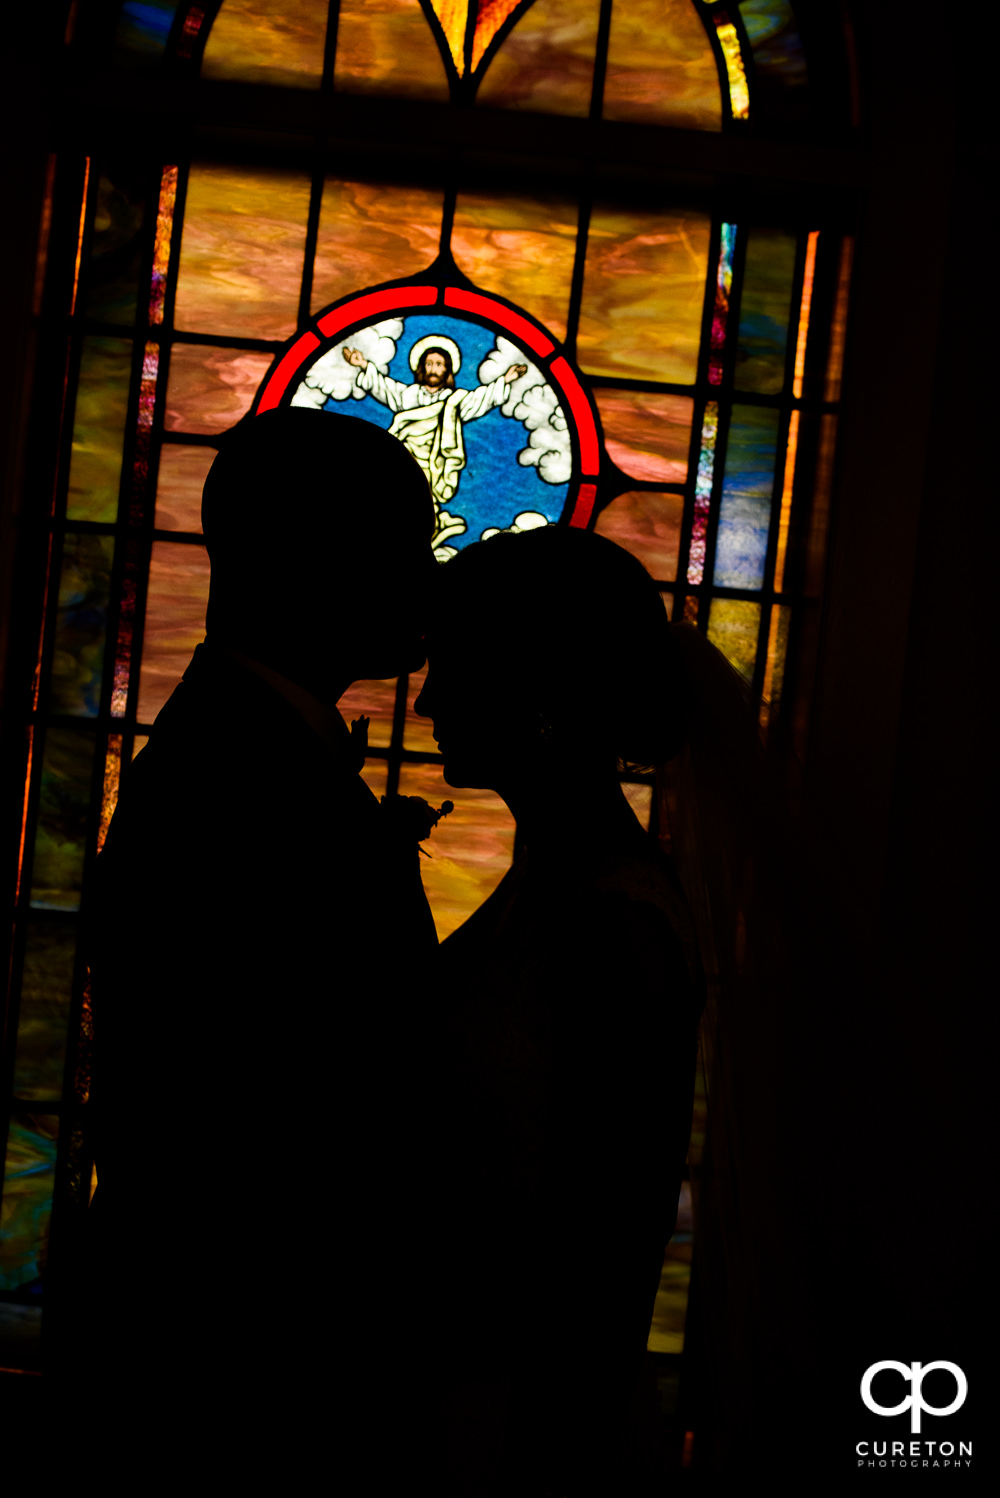 Silhouette of bride and groom in stained glass.